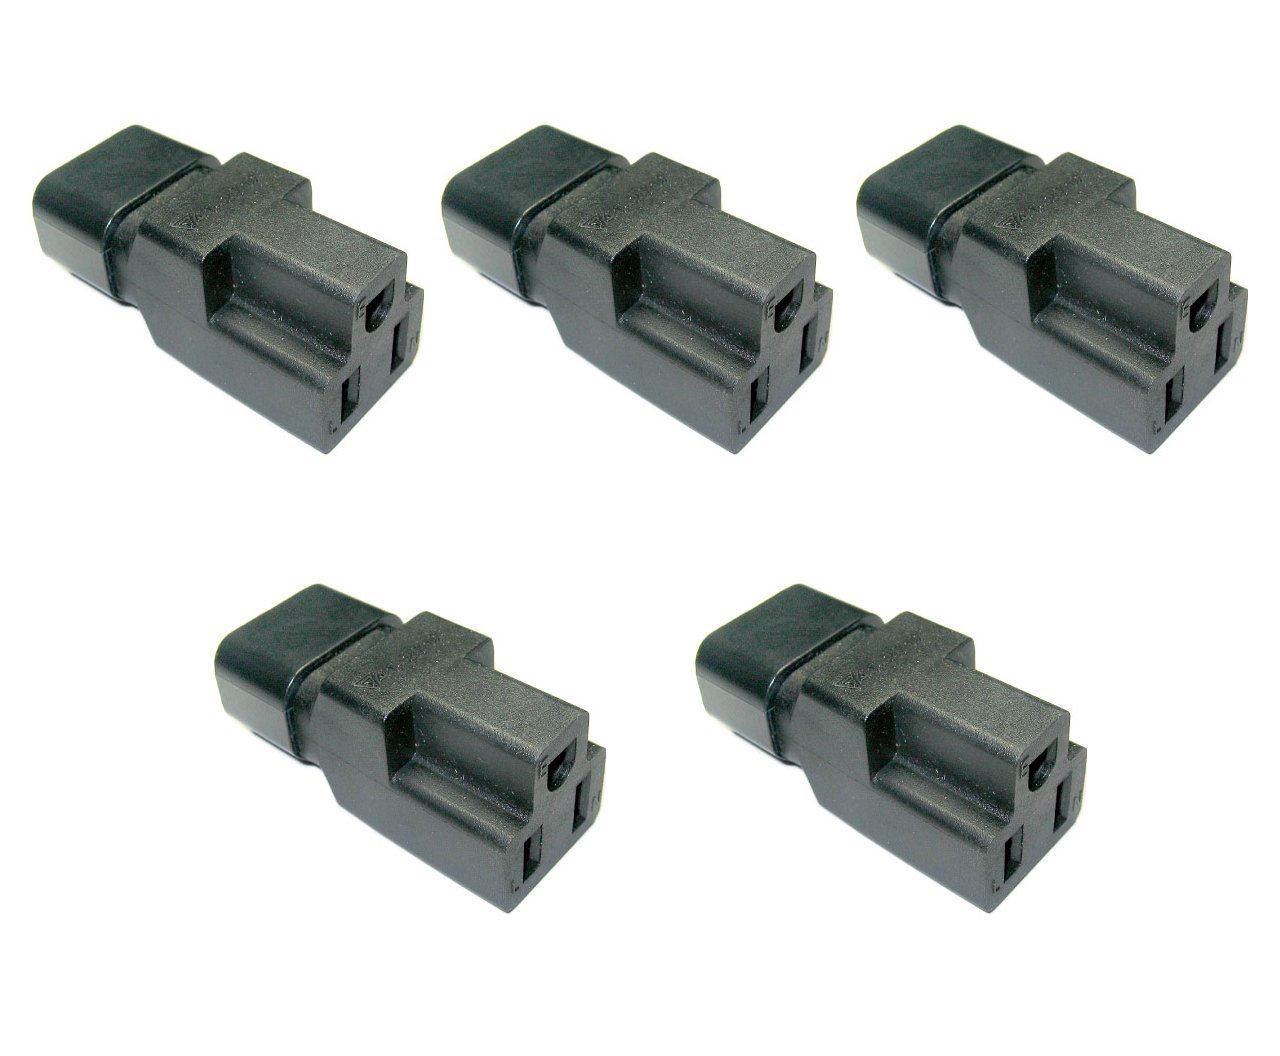 Conntek 5-30130 IEC C14 to NEMA 5-15R Plug Adapter 10Amp, 5 Pack